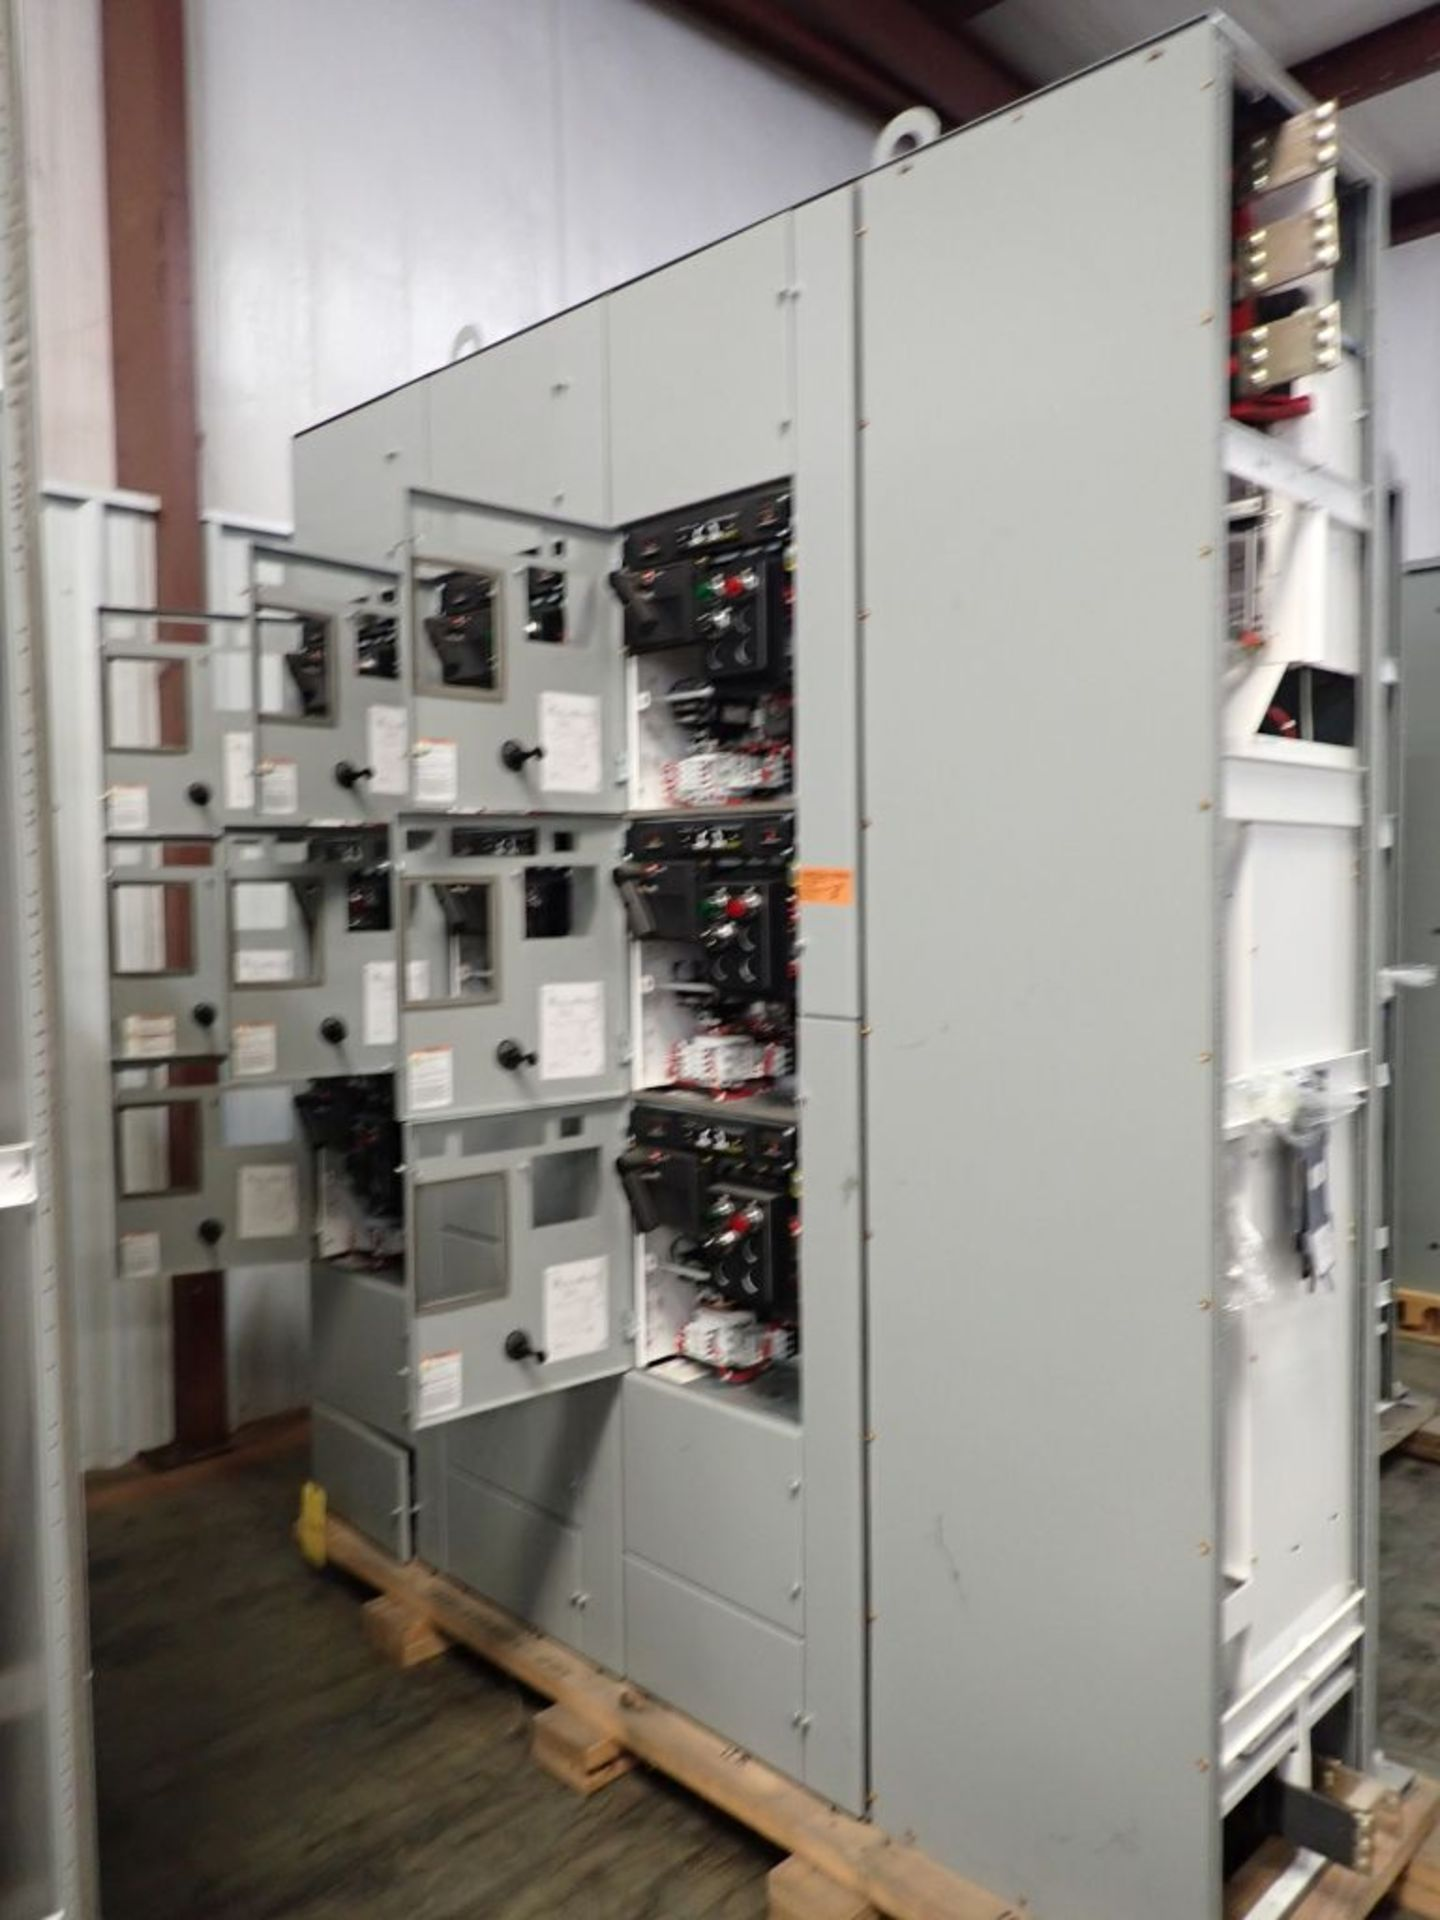 Eaton Freedom 2100 Series Motor Control Center | (11) F206-30A-10HP; (5) F206-15A-10HP; (1) SVX900- - Image 5 of 102